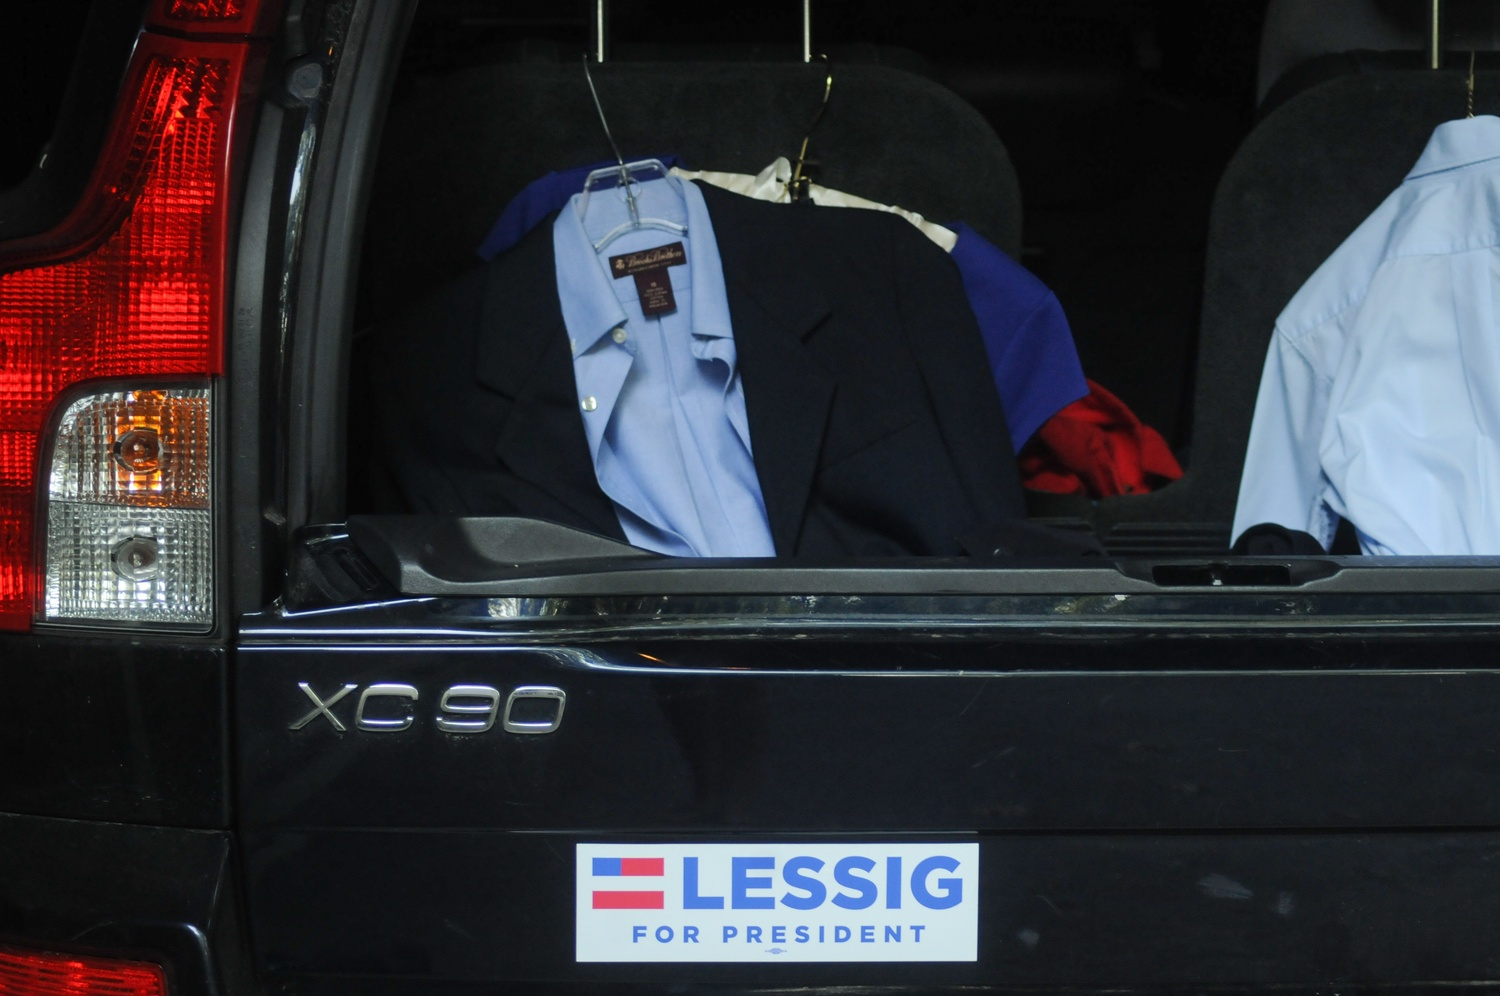 Prof. Lawrence Lessig's son's jacket sits in the back of his family's car before Lessig's campaign kickoff. Lessig launched his bid for the democratic candidacy on Wednesday, Sept. 9 in Claremont, NH.